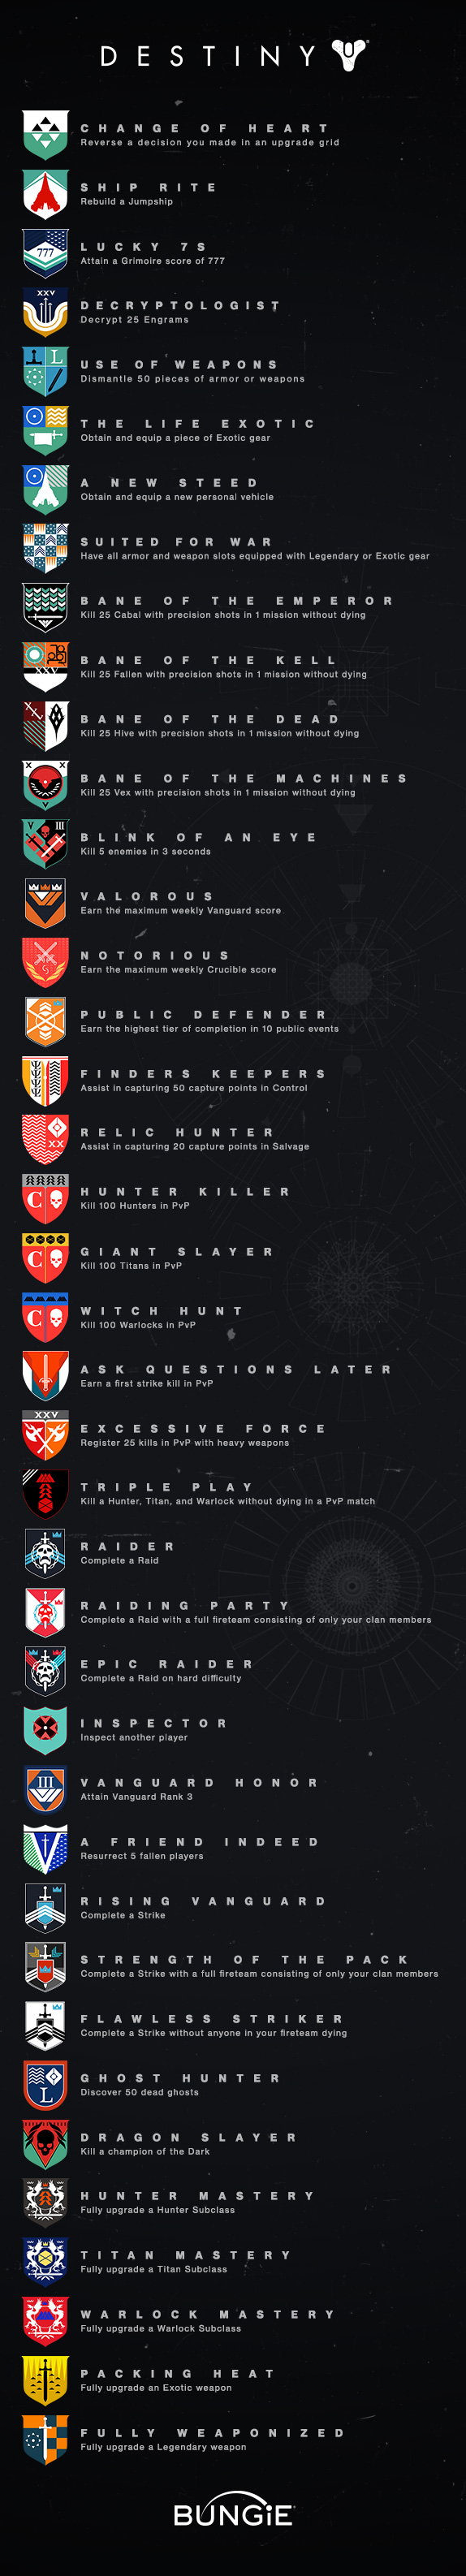 Destiny Achievements and Trophies list